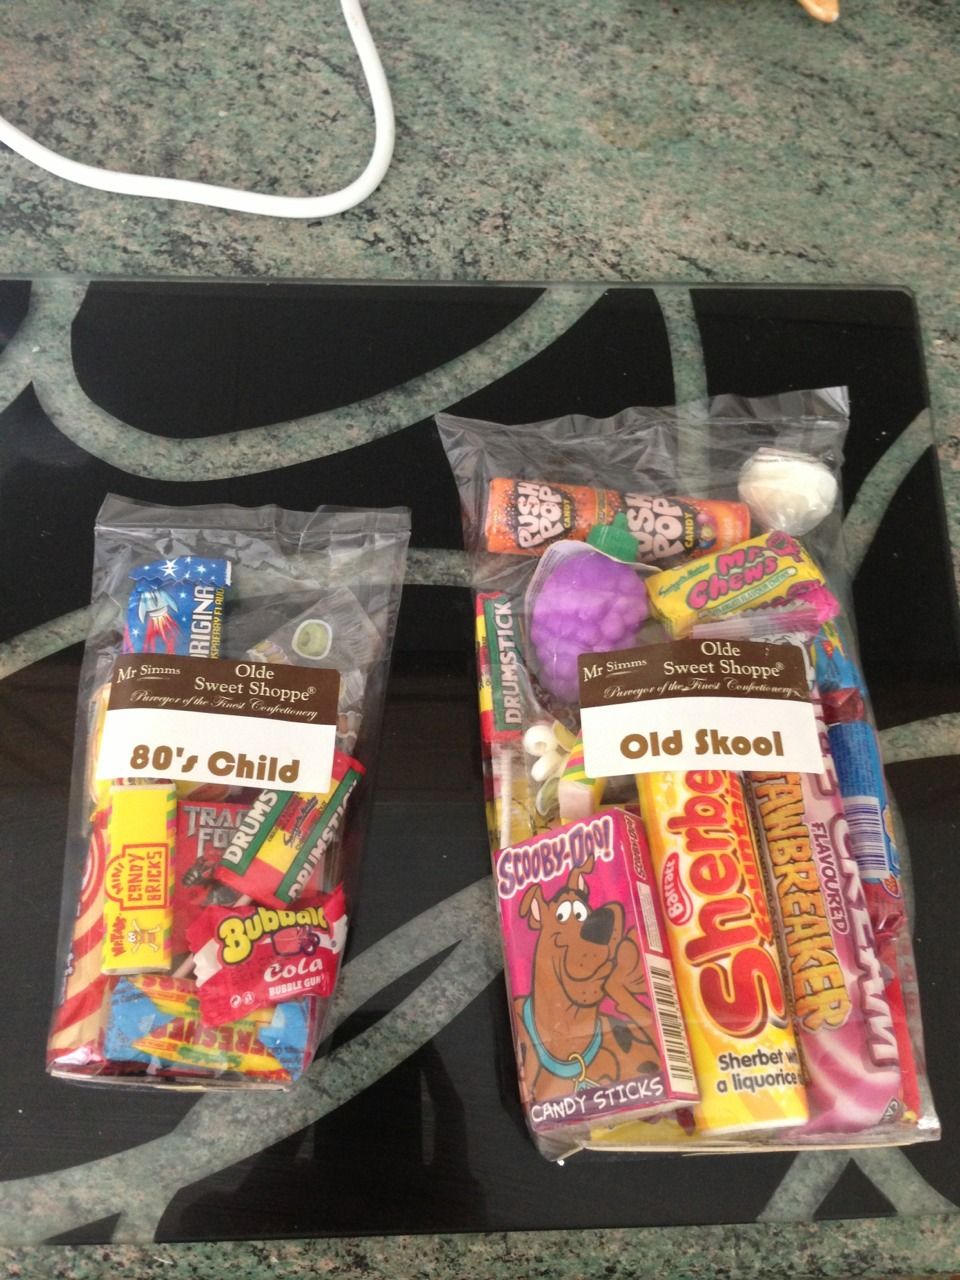 My best friend knows me so well she got me loads of sweets for my 24th birthday!